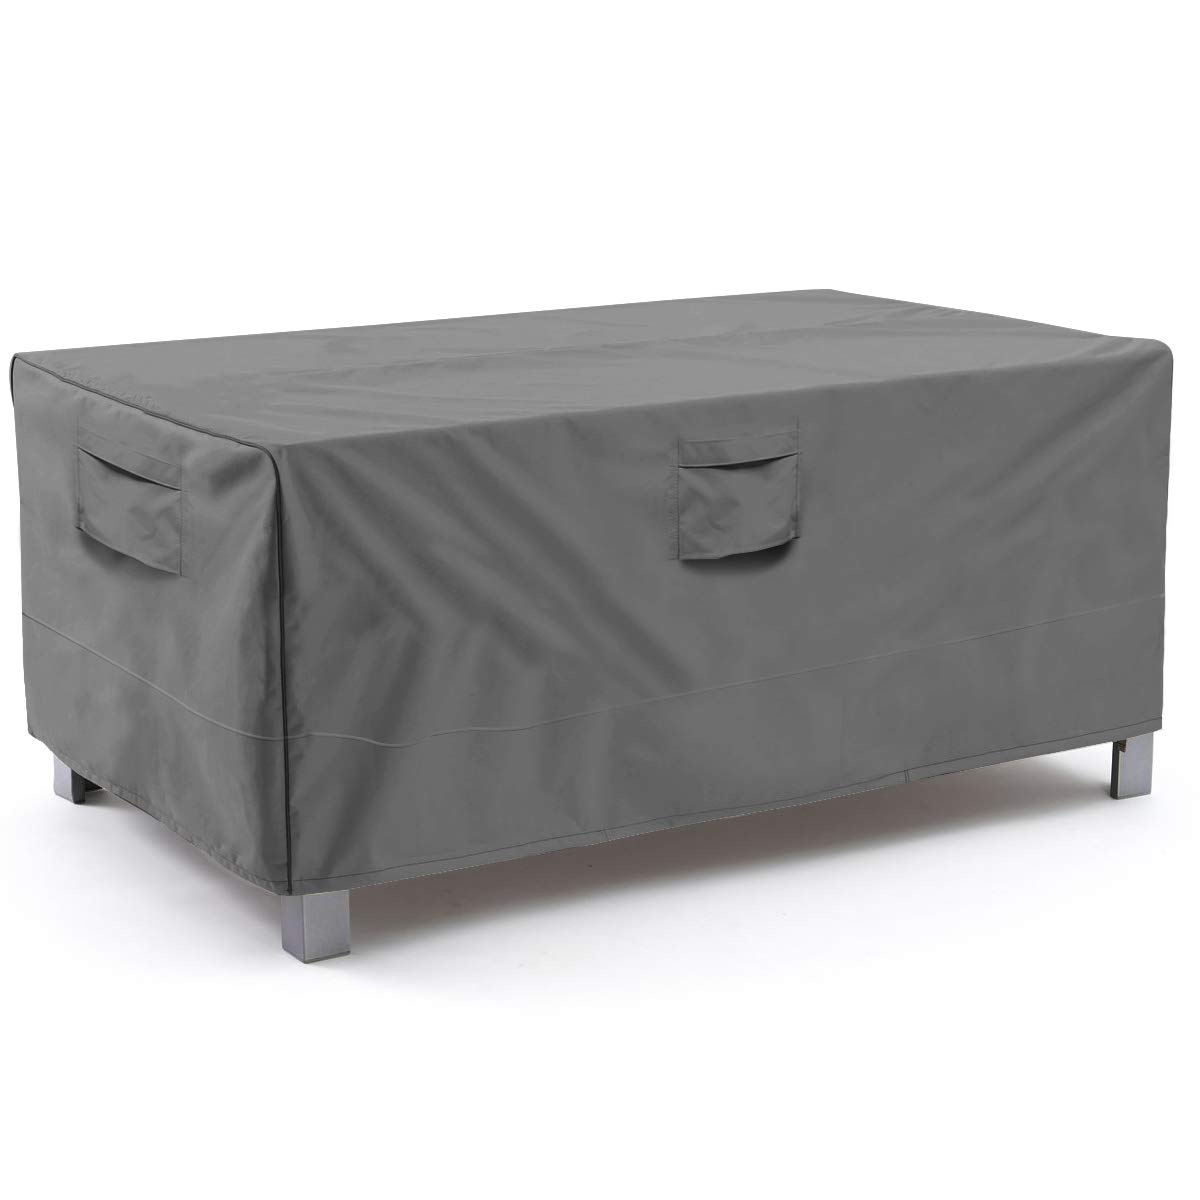 Vailge Veranda Rectangular/Oval Patio Table Cover, Heavy Duty and Waterproof Outdoor Lawn Patio Furniture Covers, Large Grey